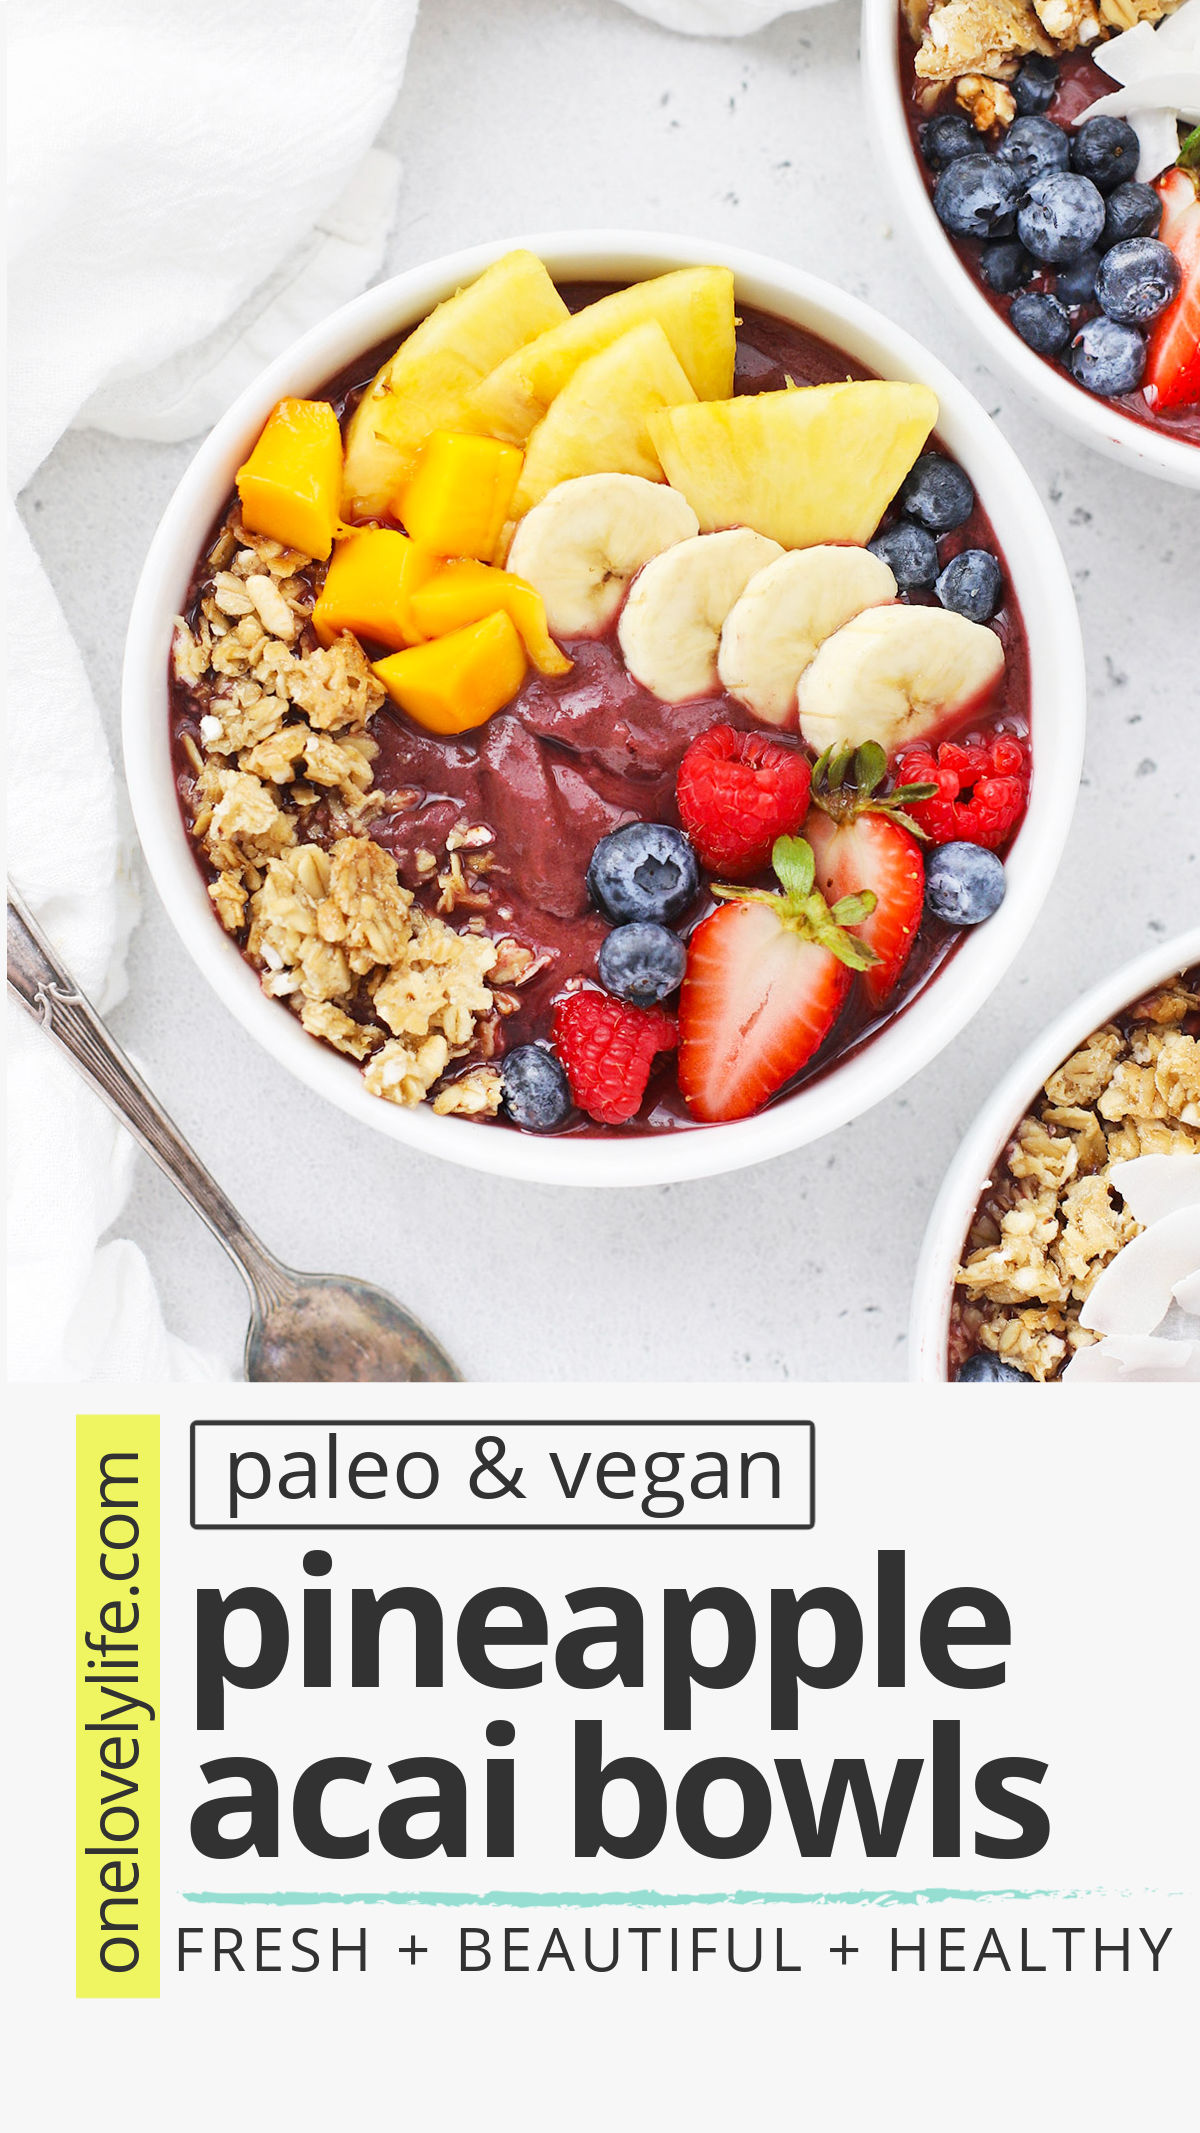 Pineapple Acai Bowls - These sweet, fresh tropical acai bowls are perfect for a hot day. Don't miss our list of toppings to try! (Vegan, Paleo) // Pineapple Acai Smoothie Bowl // Tropical Acai Bowl Recipe // Paleo Breakfast // Vegan Breakfast // Healthy Breakfast // Acai Bowls recipe // healthy snack #acai #smoothiebowl #acaibowl #vegan #paleo #healthy